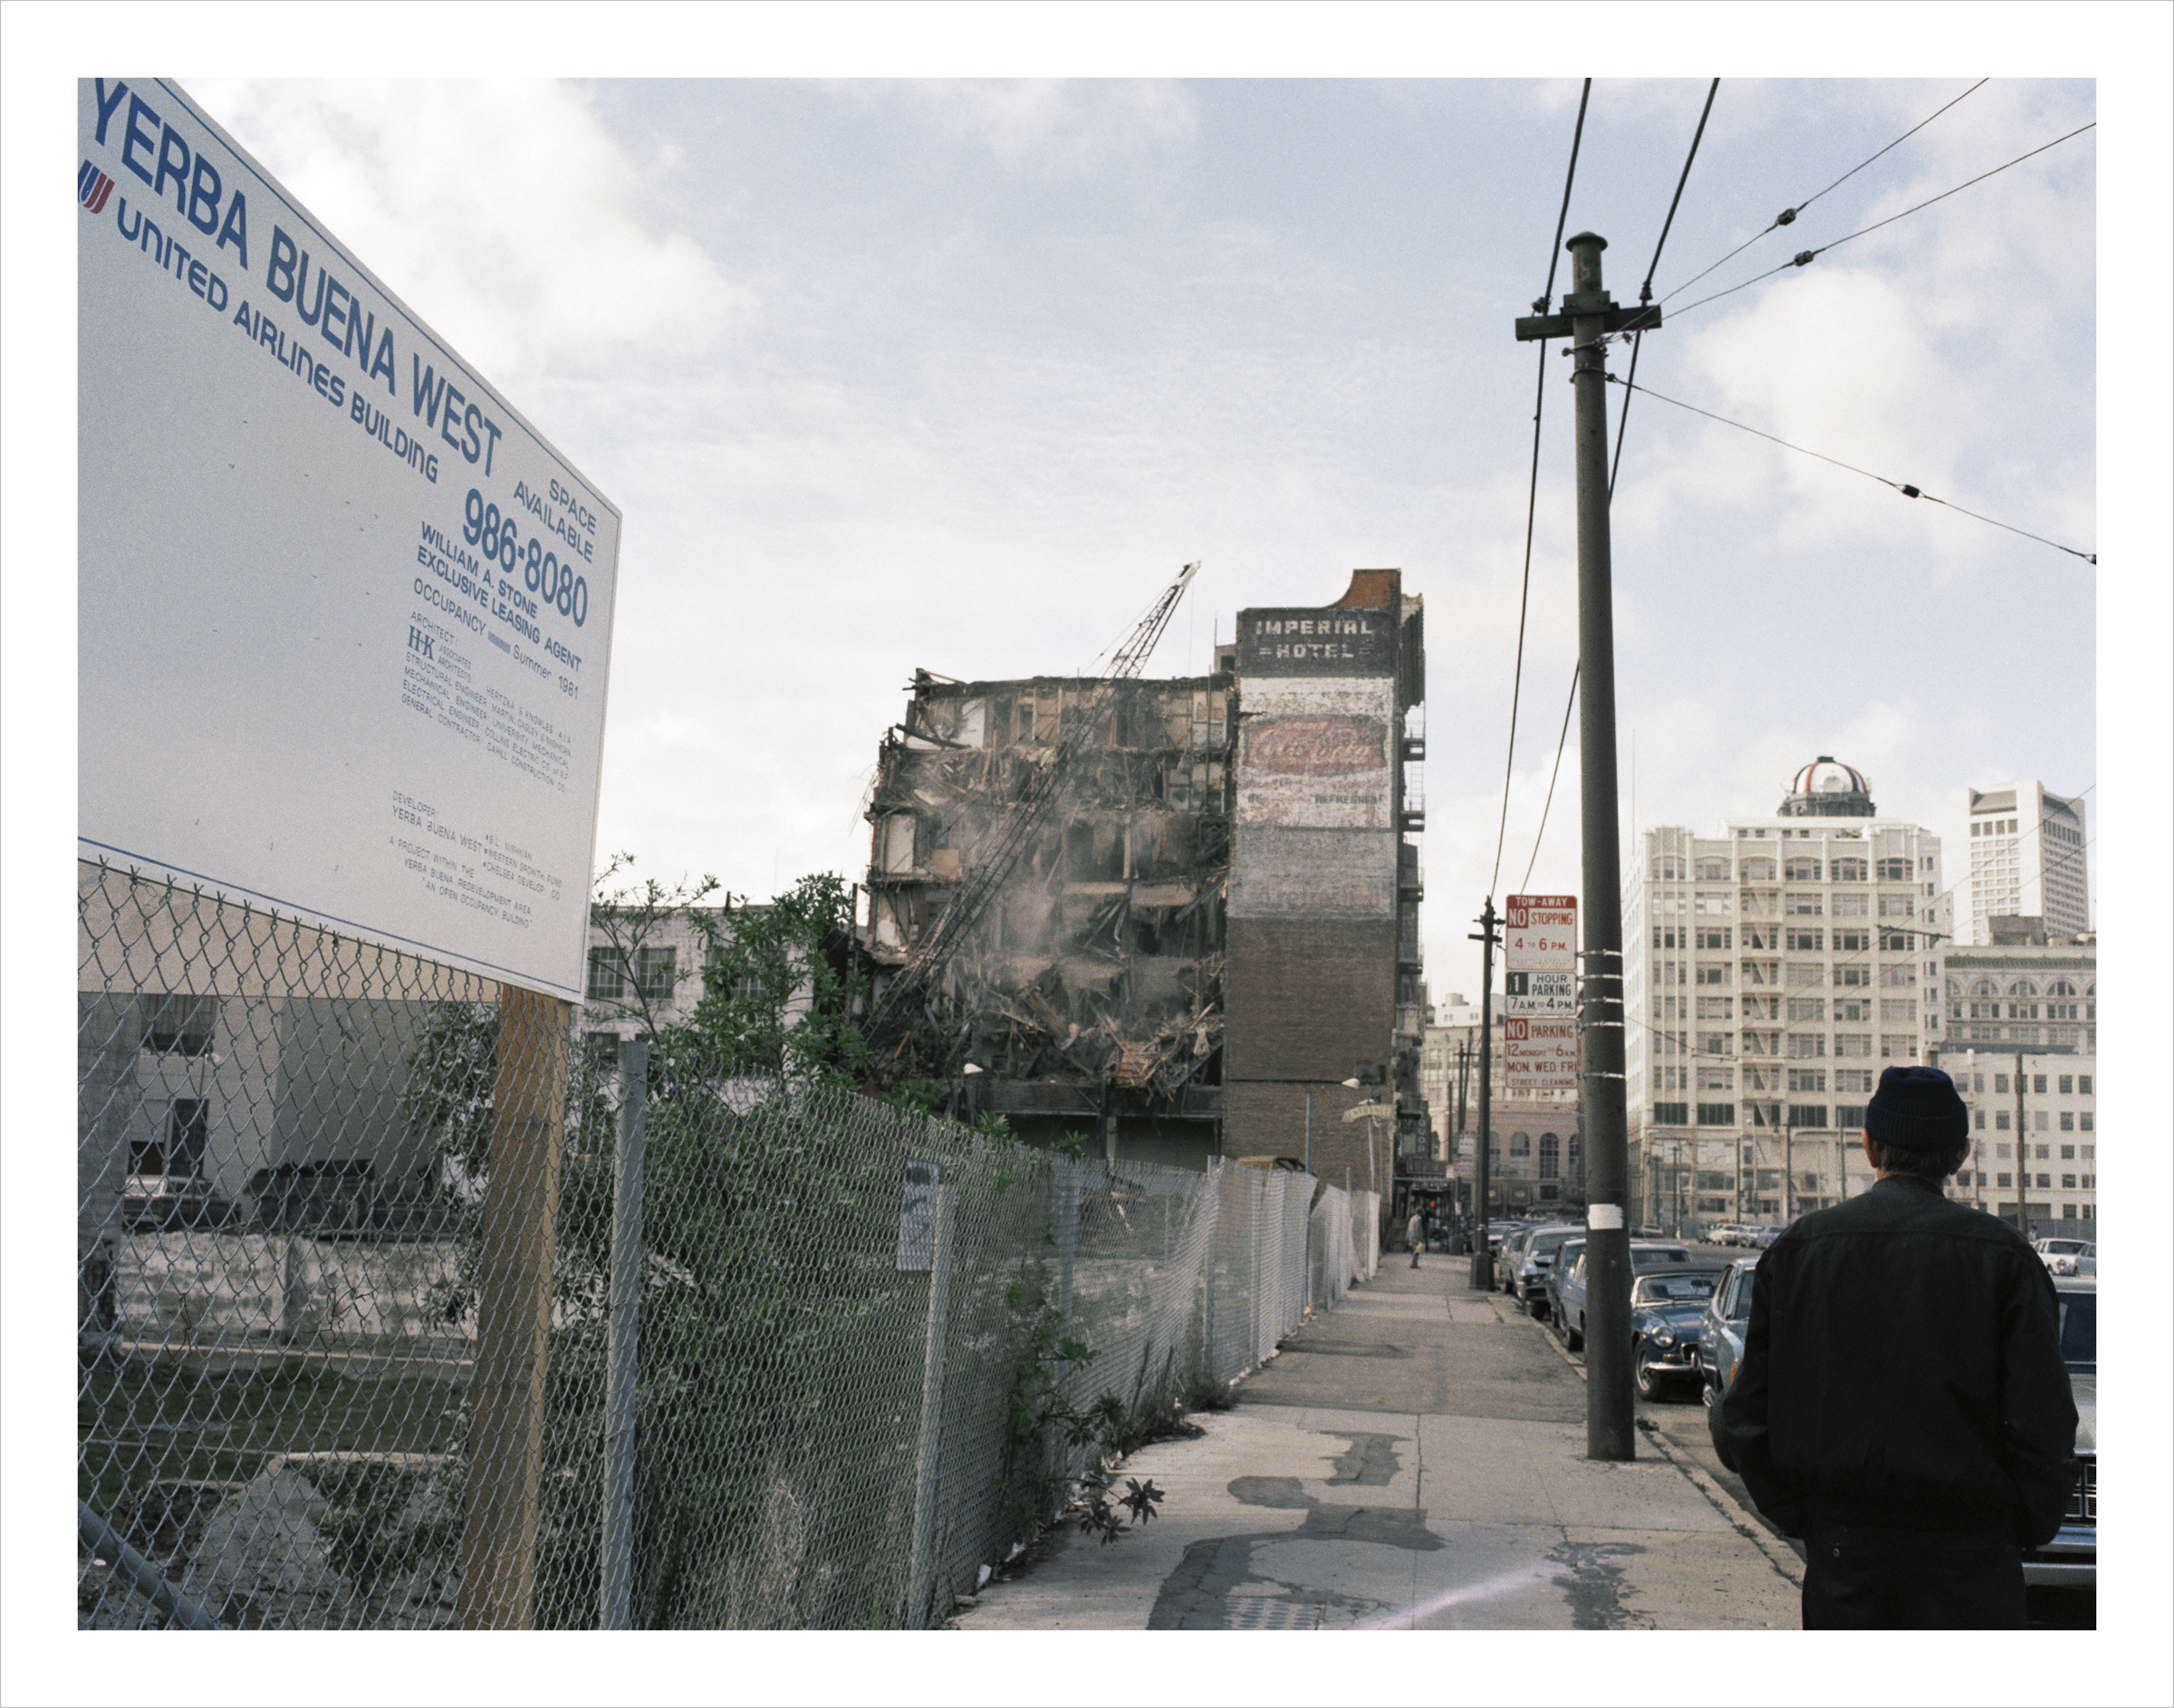 Future site of Yerba Buena West, 4th at Howard Street, 1978 Archival Pigment Print, 2016 16 x 20 inches, edition of 5 20 x 24 inches, edition of 2 30 x 40 inches, edition of 2